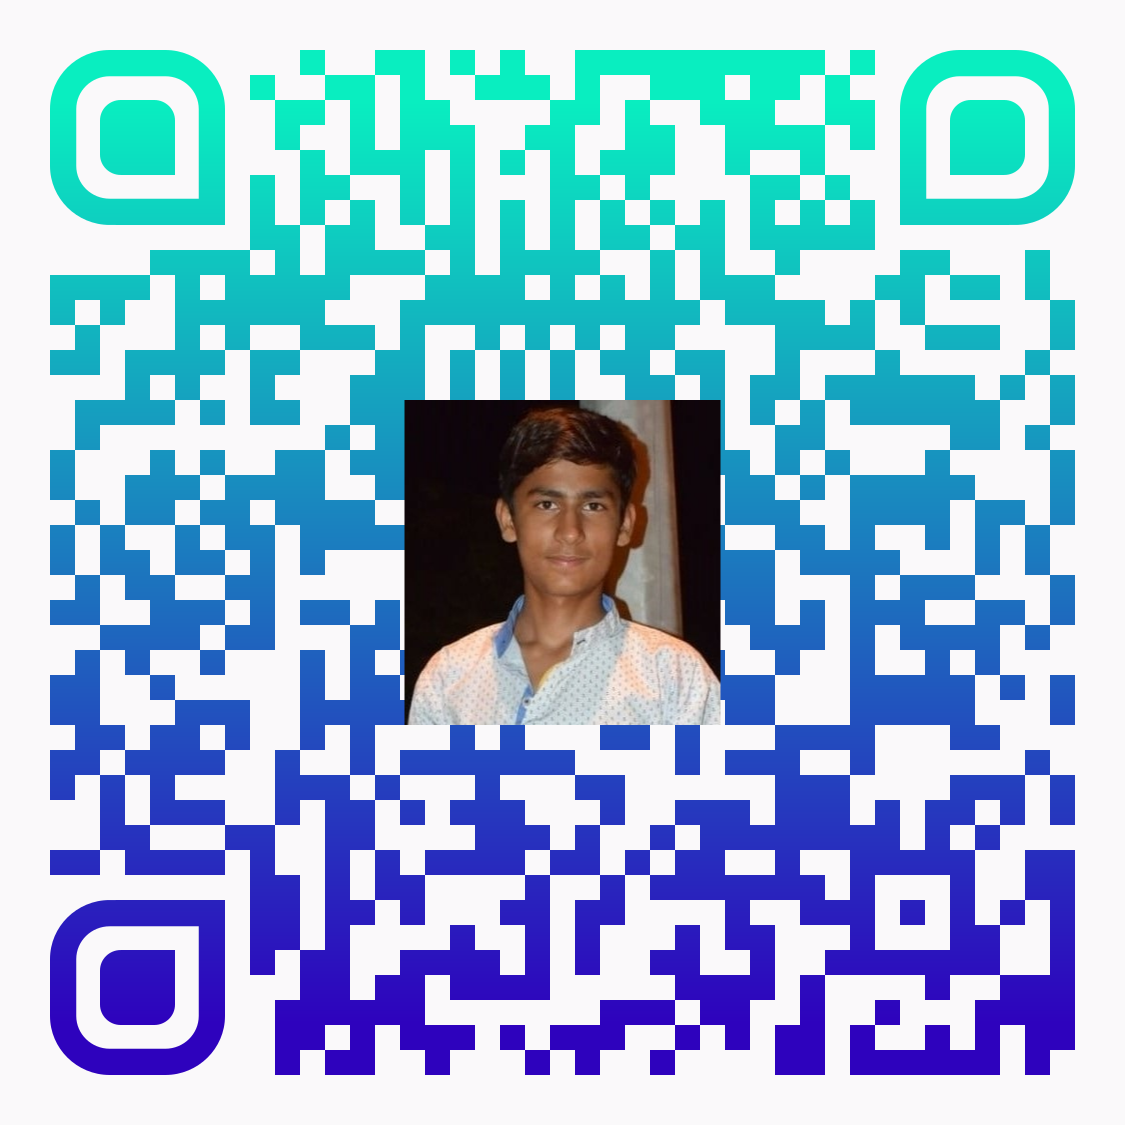 I will Create an excellent QR Code for you